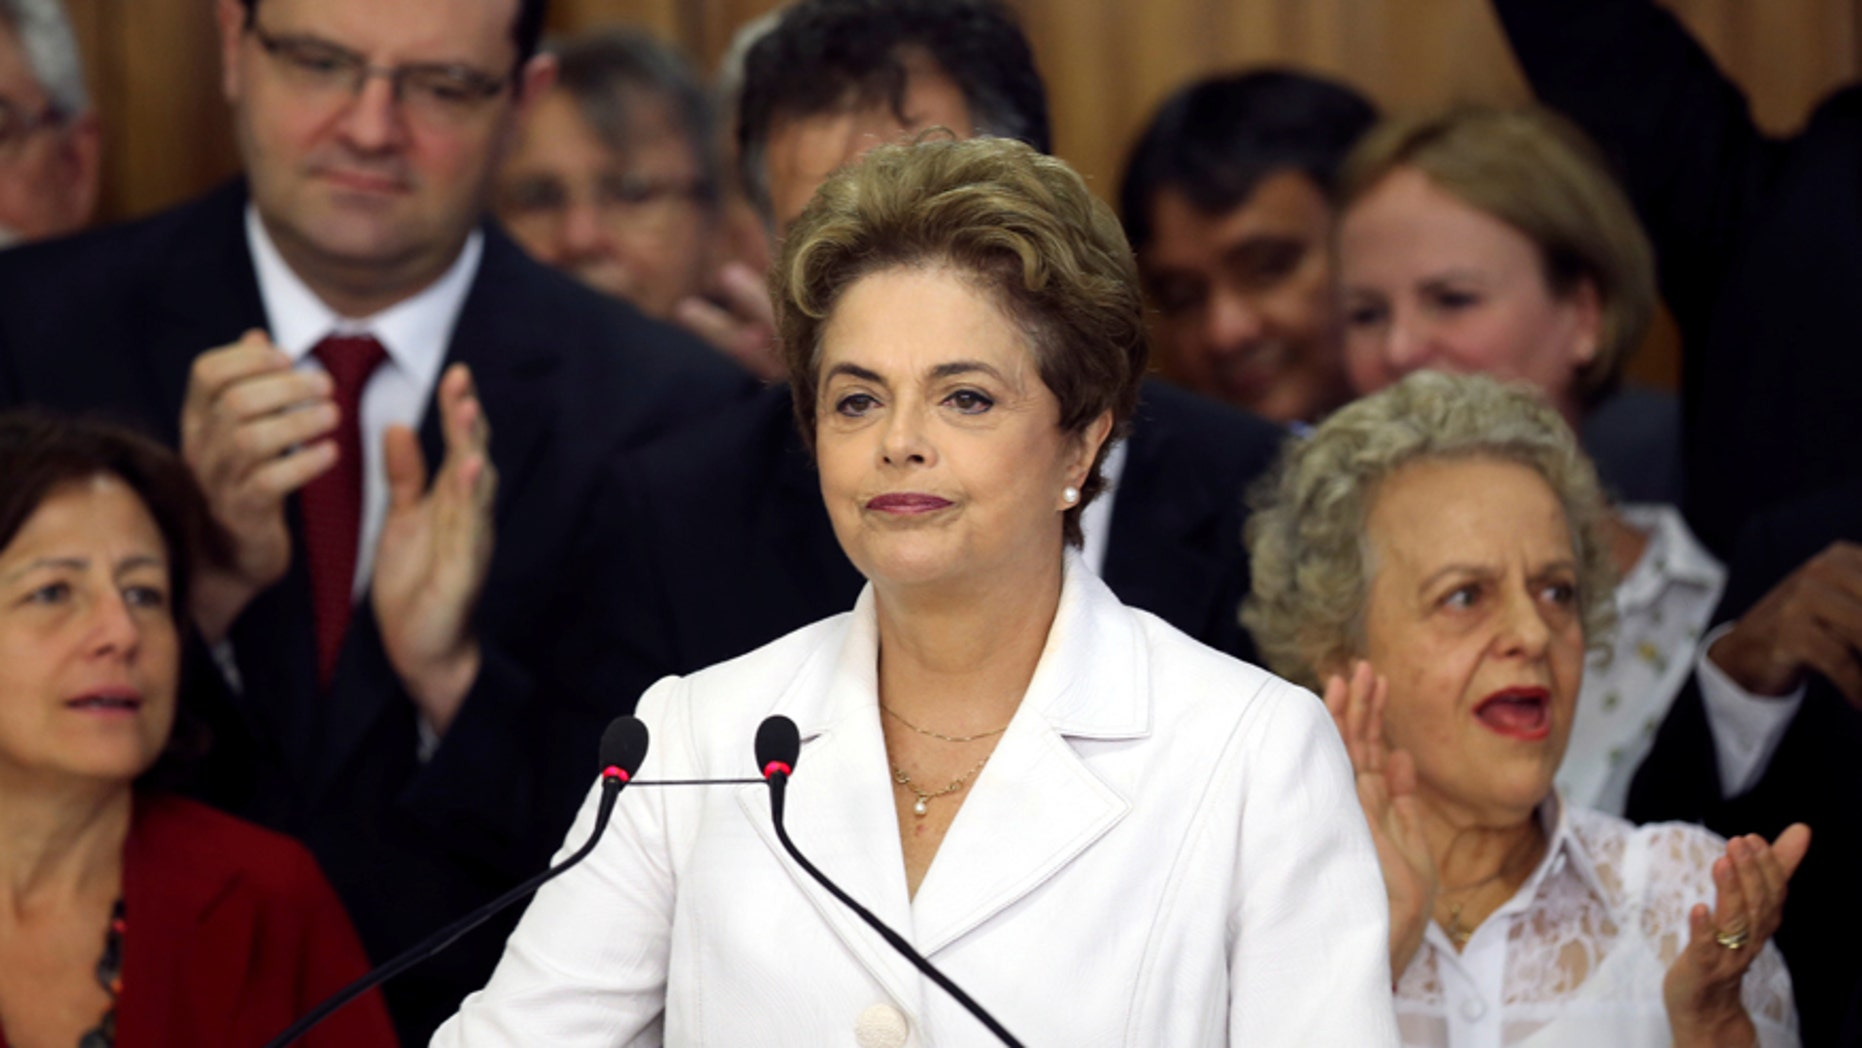 May 12, 2016: Suspended Brazilian President Dilma Rousseff addresses the audience after the Brazilian Senate voted to impeach her for breaking budget laws, at Planalto Palace in Brasilia, Brazil.